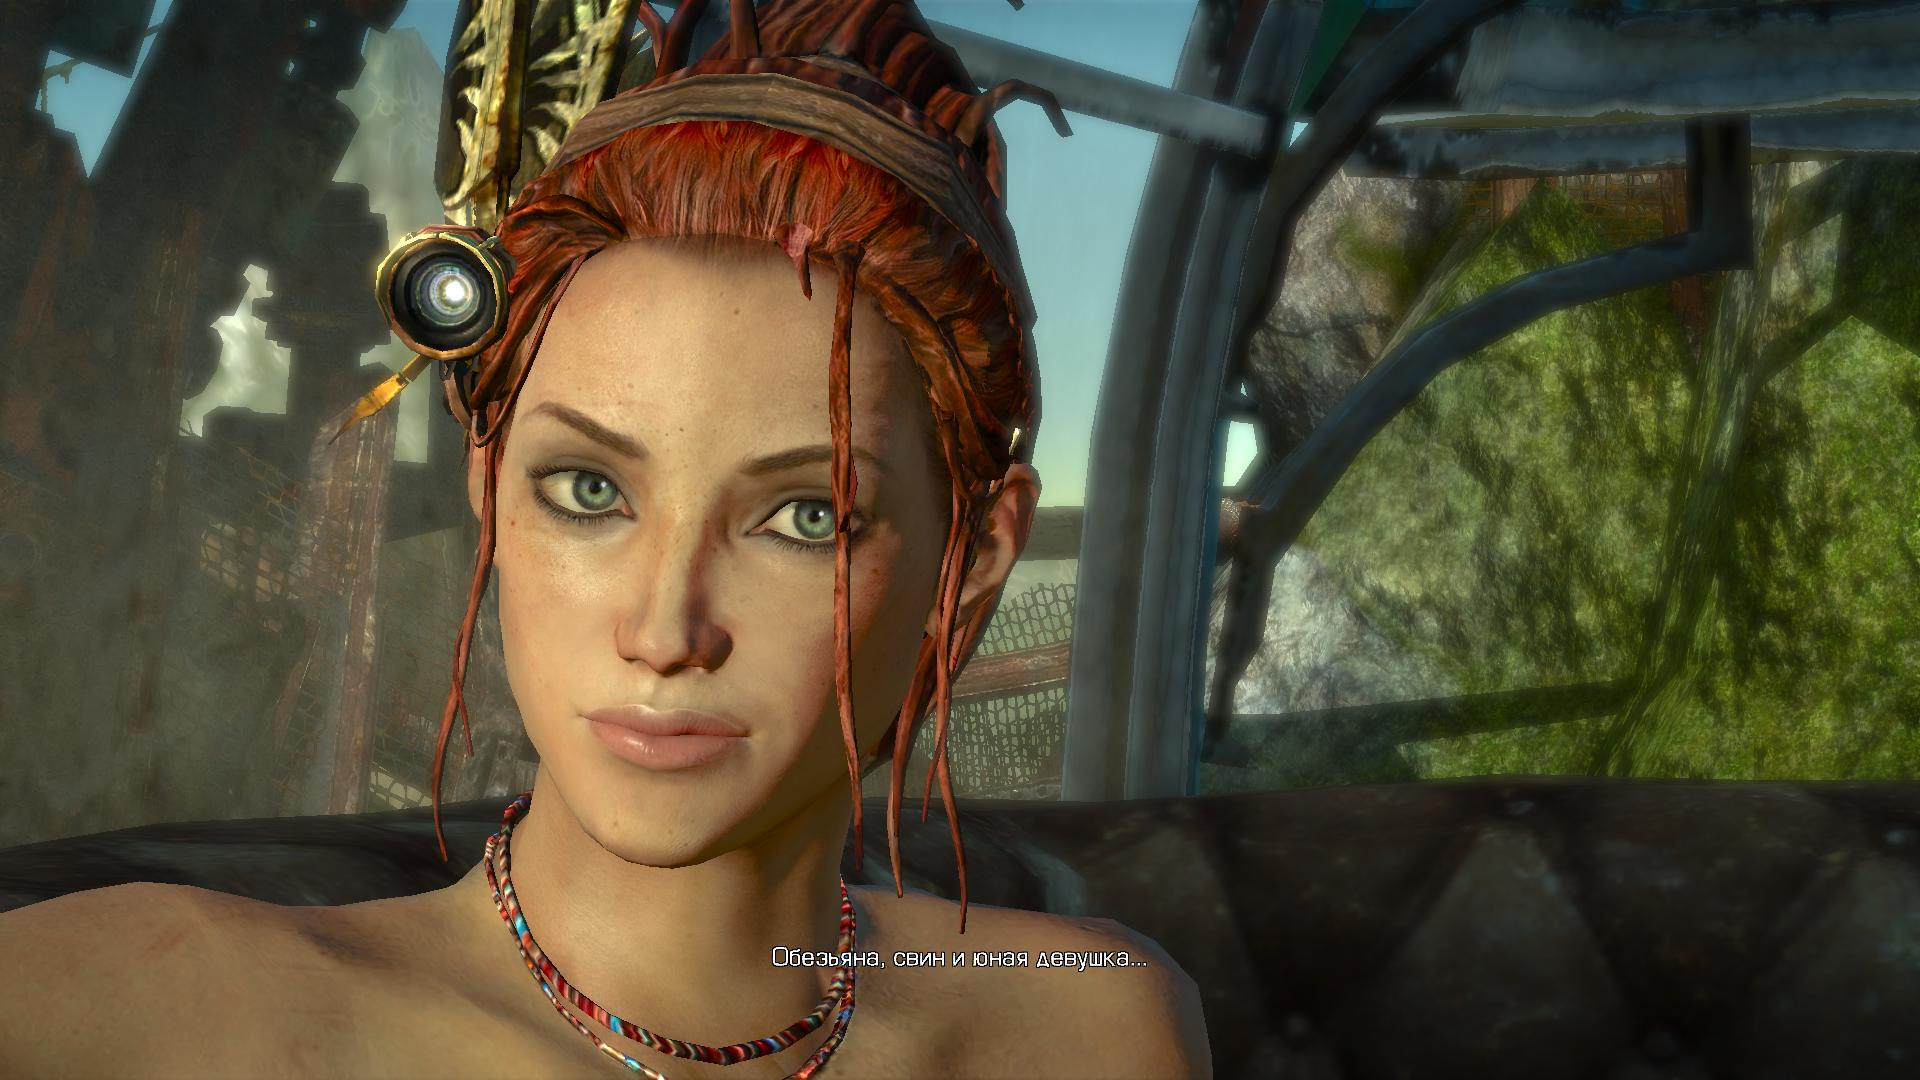 Enslaved odyssey to the west porn exposed images